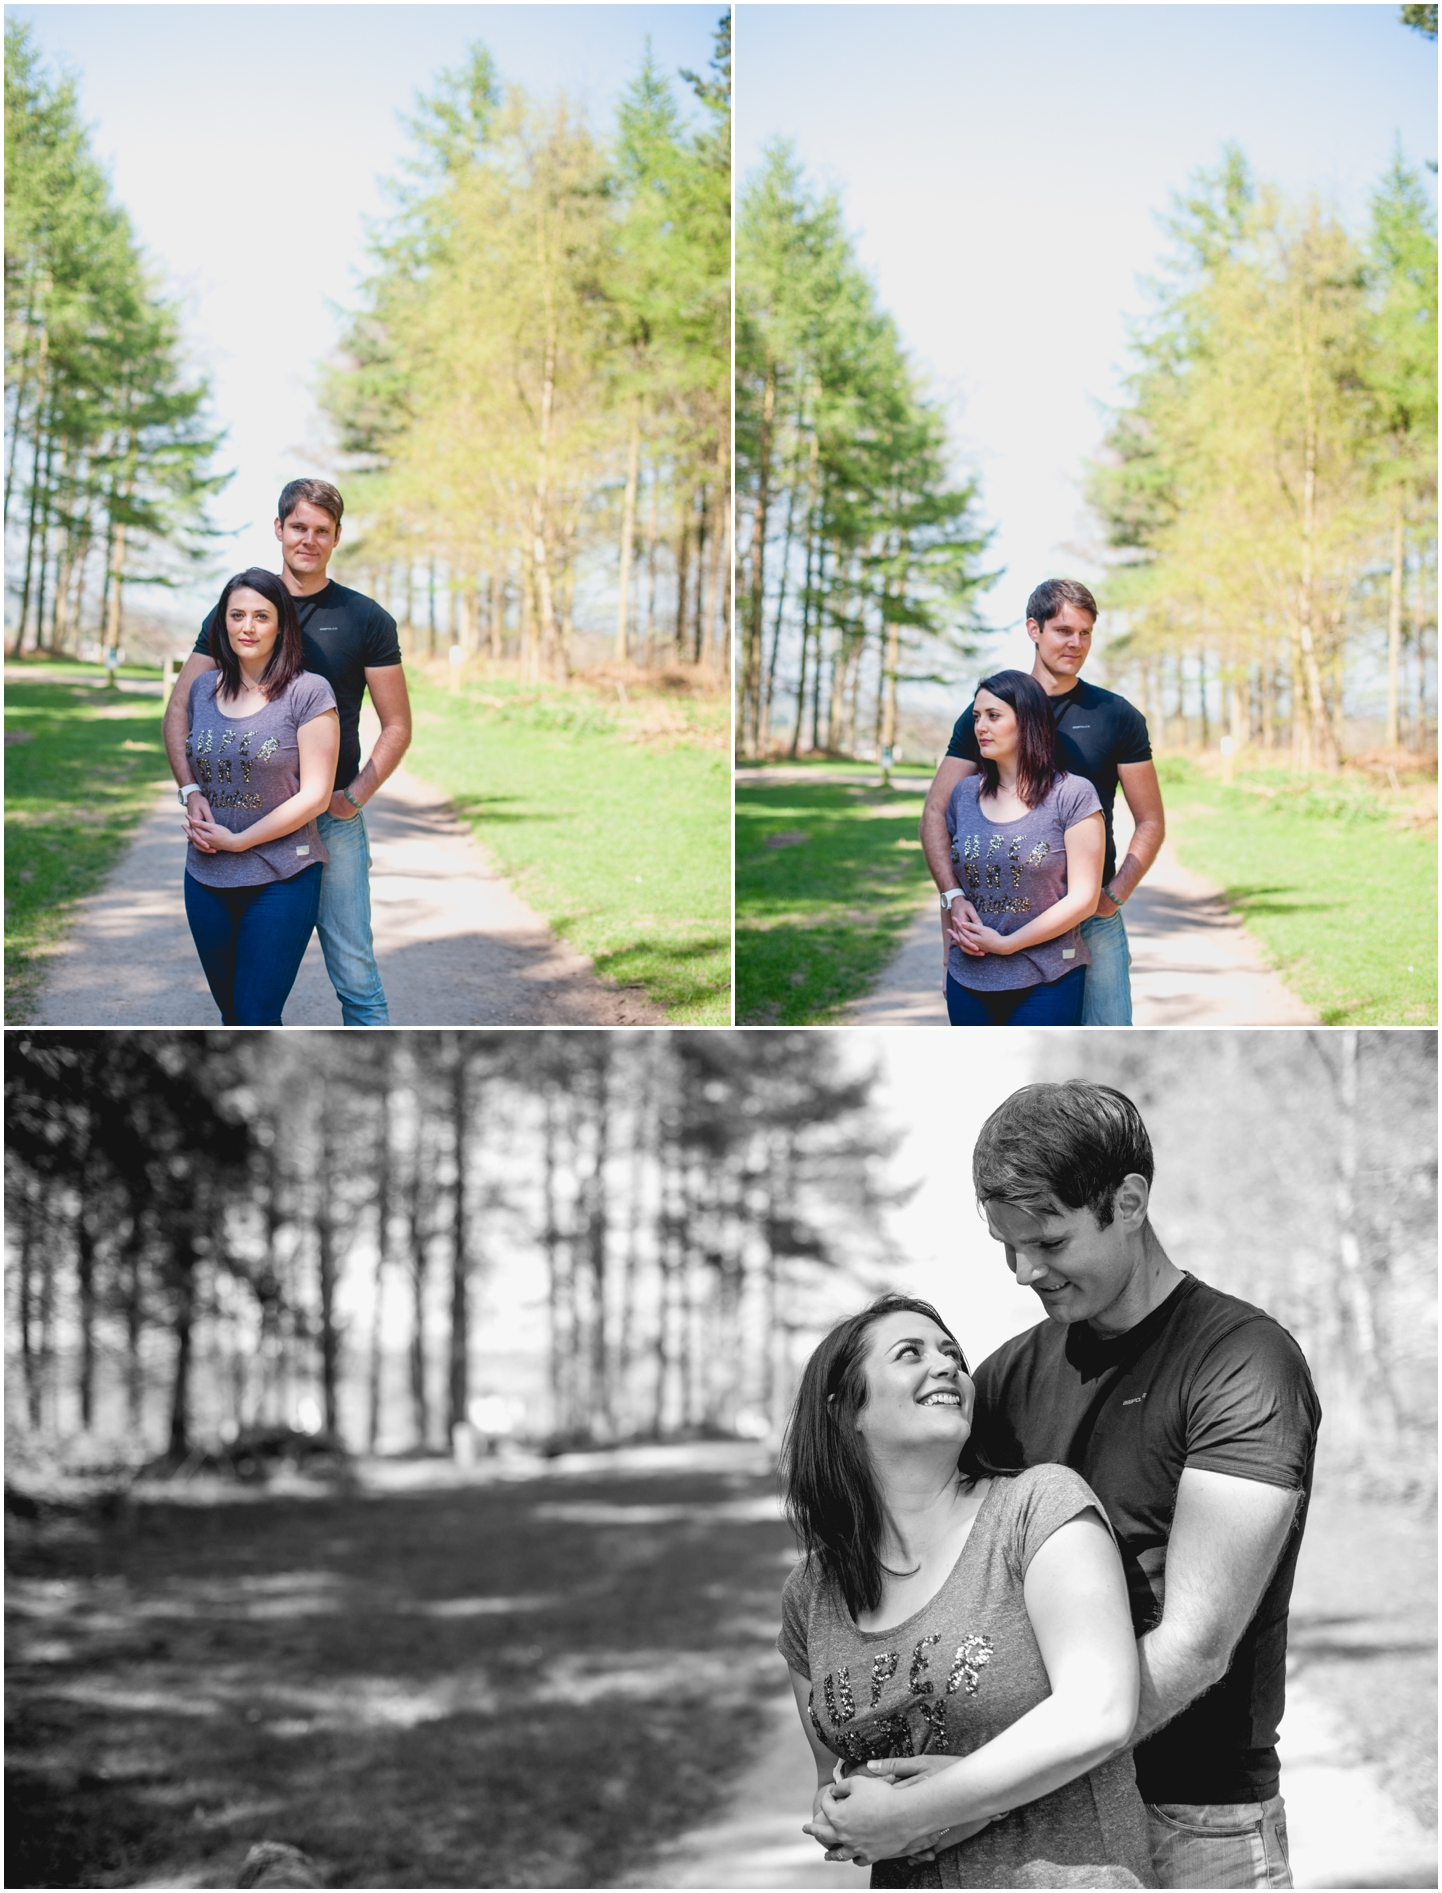 Charlotte and Gareth, Cannock Chase Engagement Shoot, Wedding Photography, Lisa Carpenter Photography, West Midlands